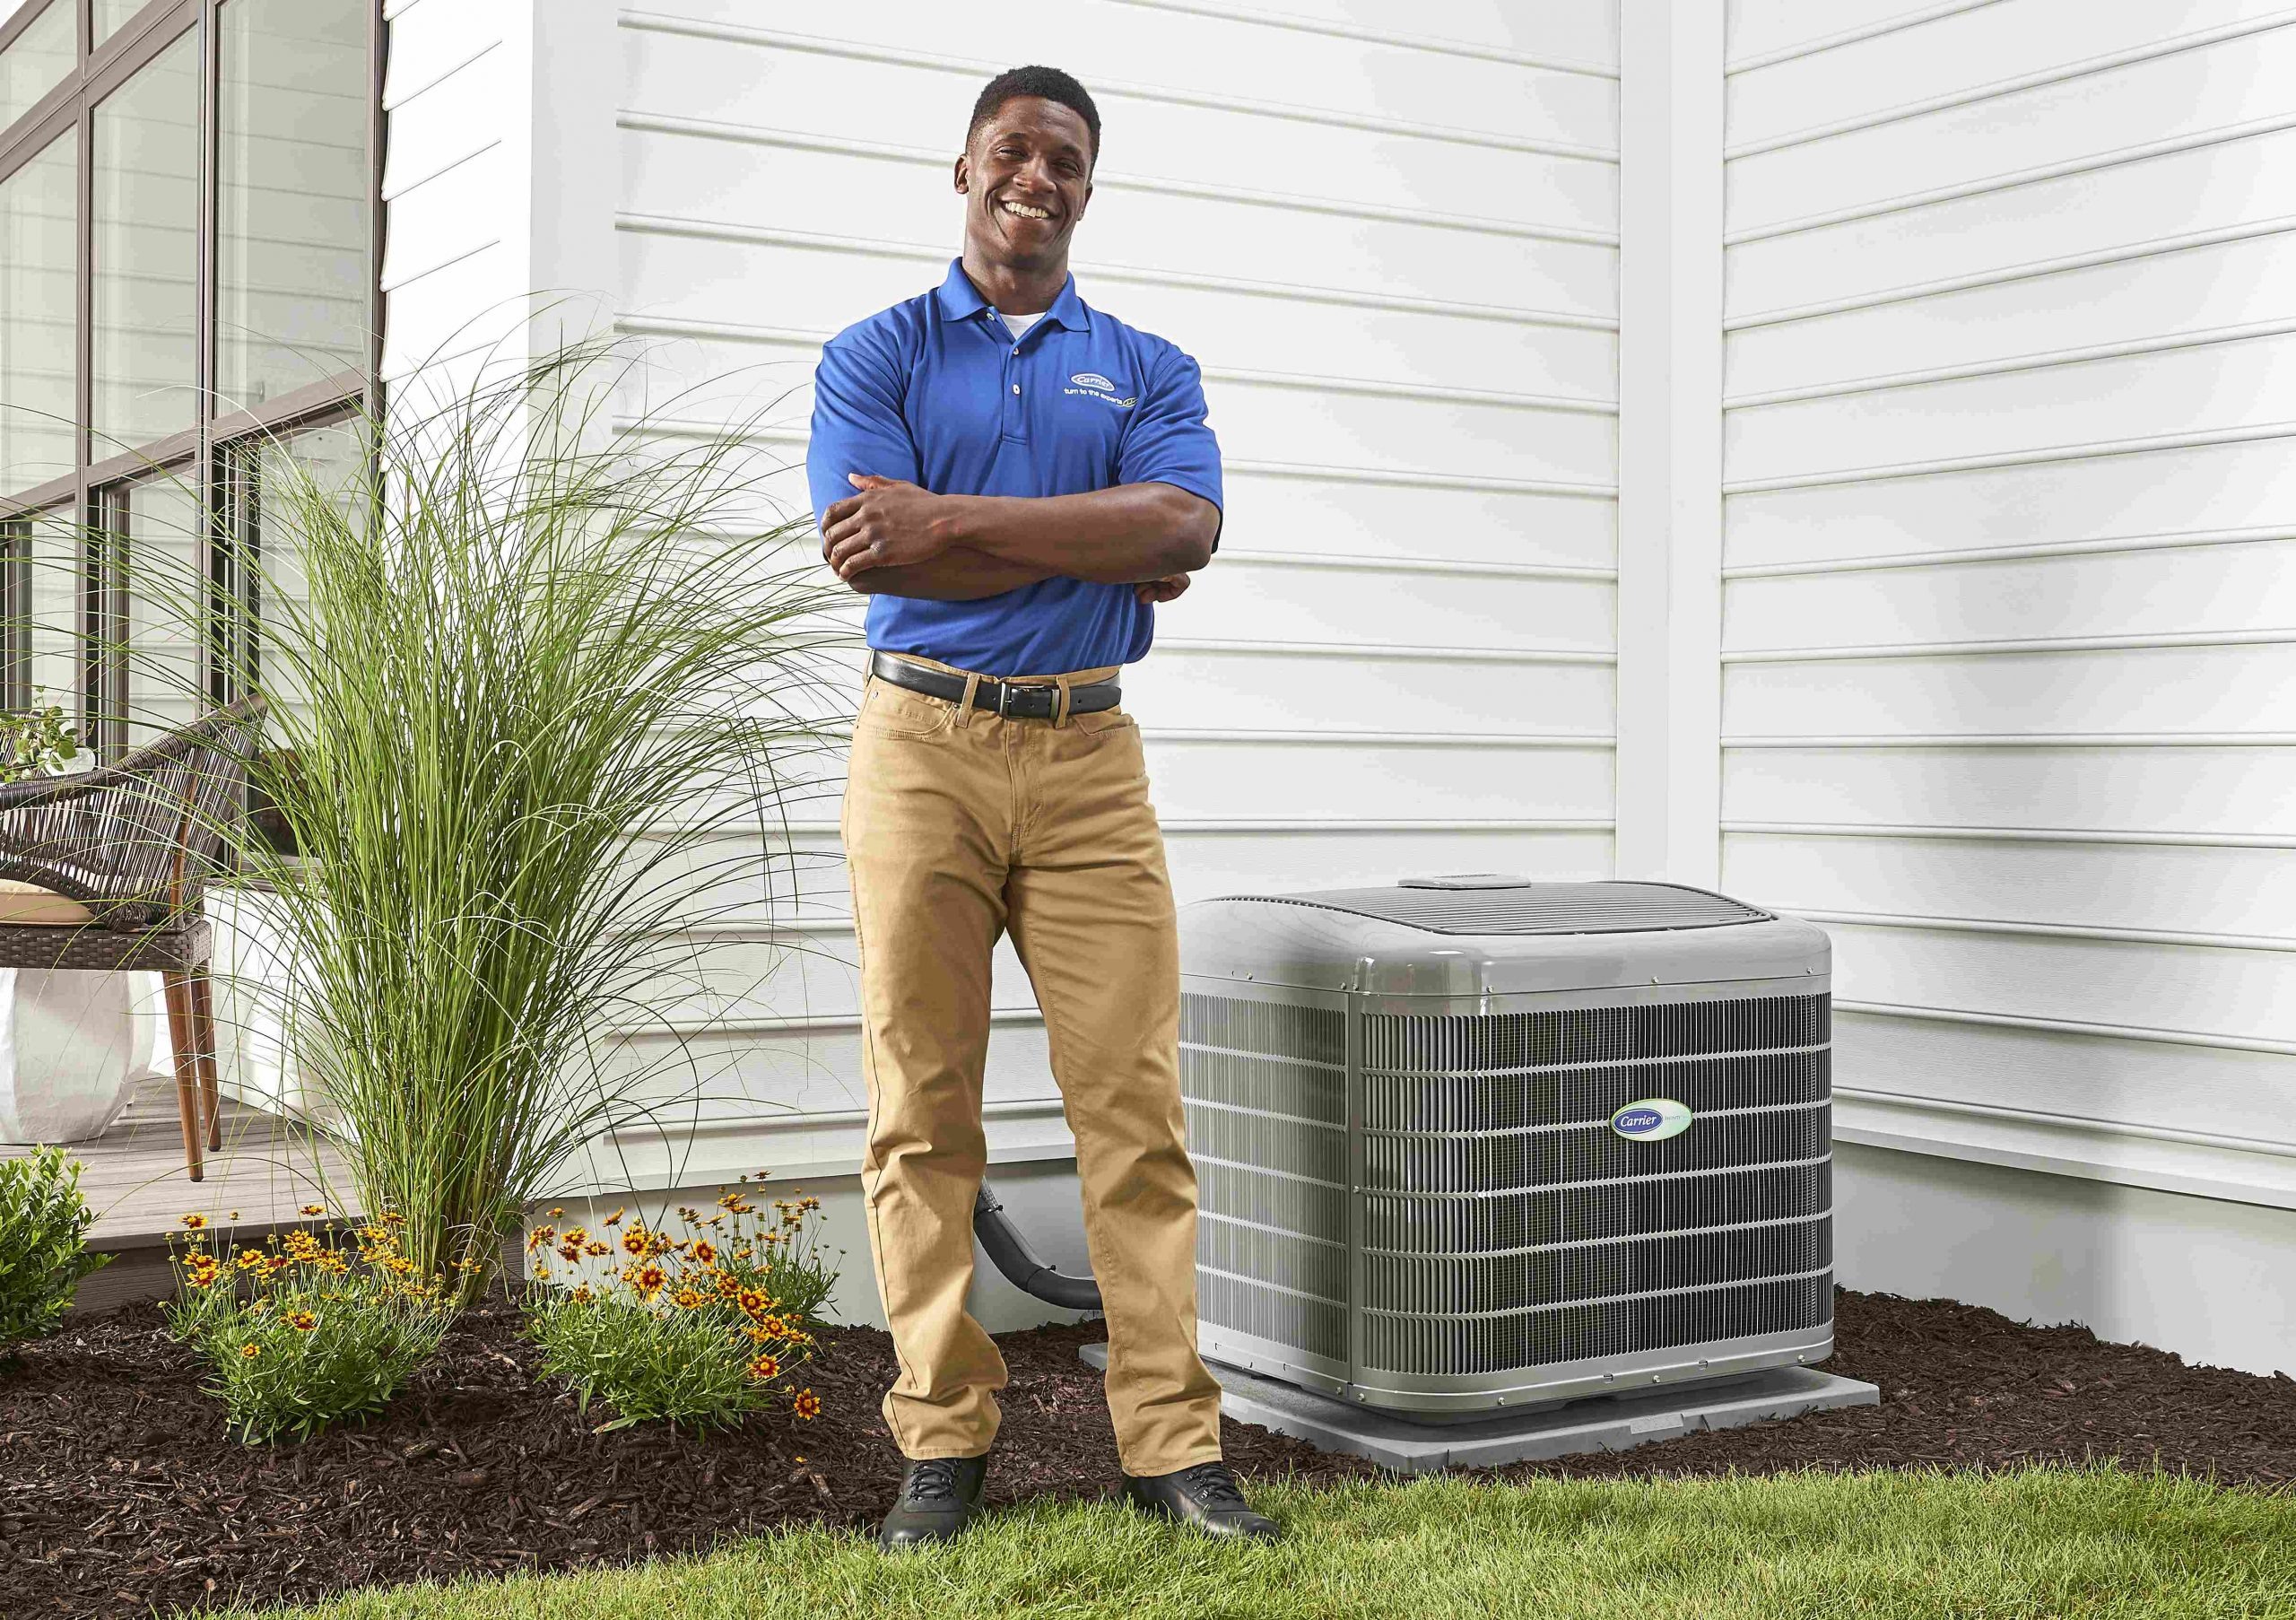 Carrier Technician standing next to air conditioner